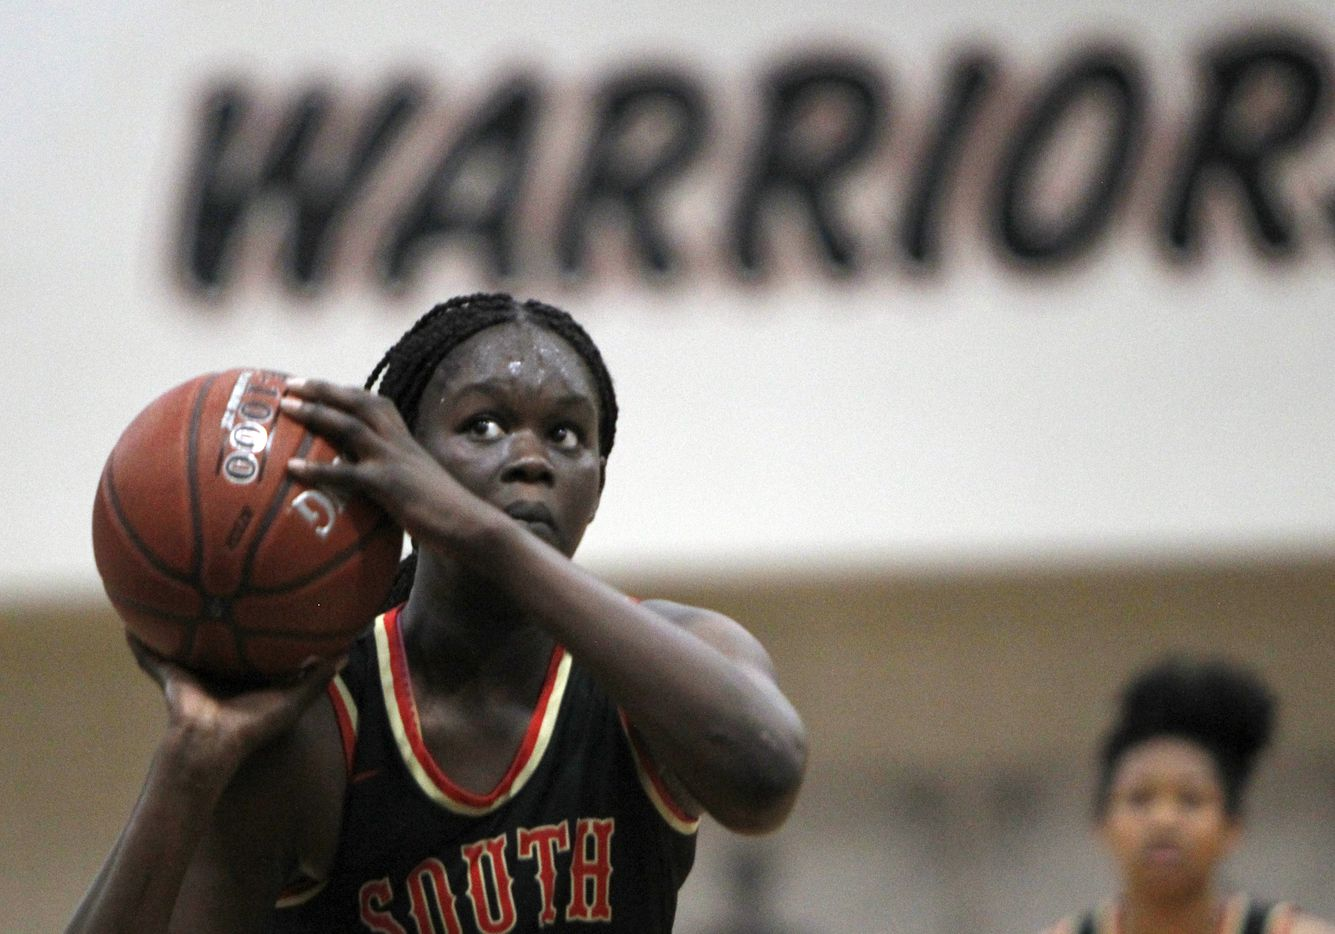 South Grand Prairie's Nxerro Maluw (5) eyes the basket before attempting a free throw during second half action against Arlington Martin. The two teams played their District 8-6A  girls varsity basketball game at Arlington Martin High School in Arlington on January 26, 2021. (Steve Hamm/ Special Contributor)